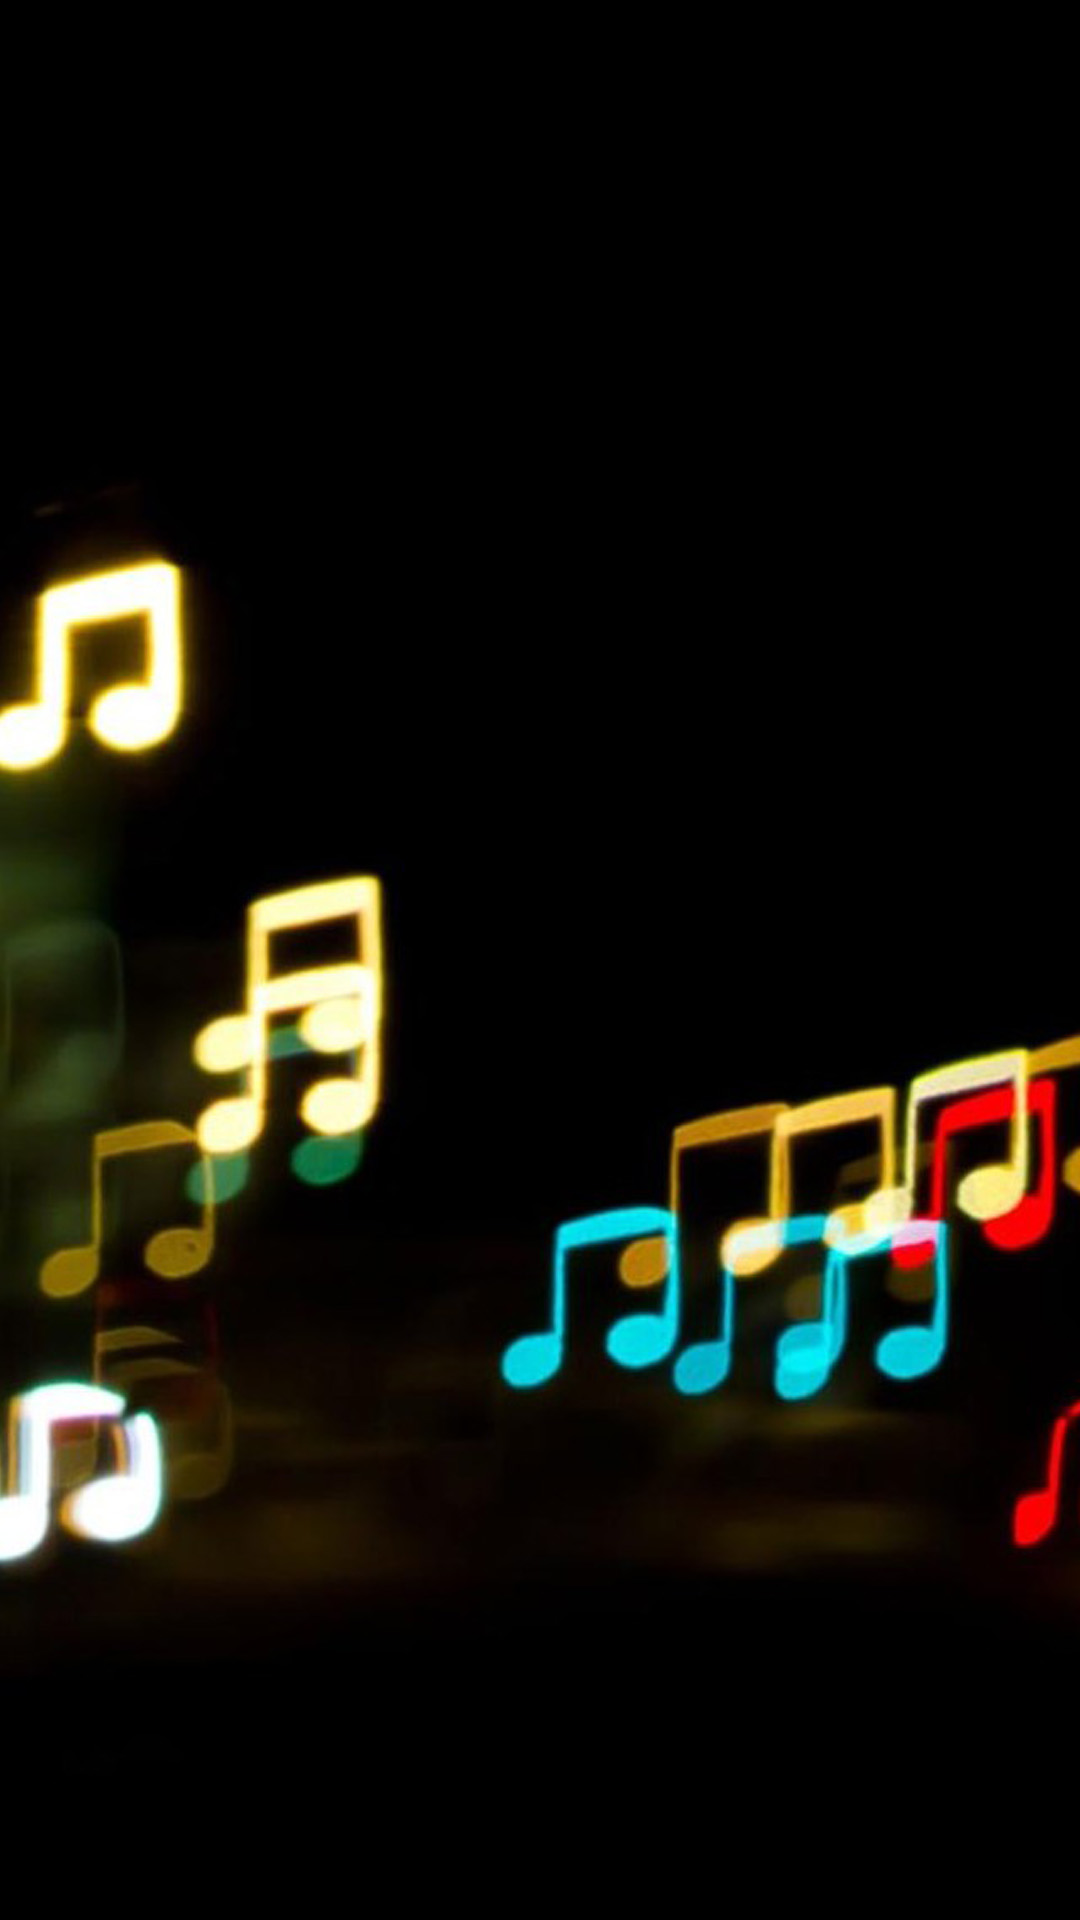 Music Wallpapers For Android Posted By Sarah Johnson